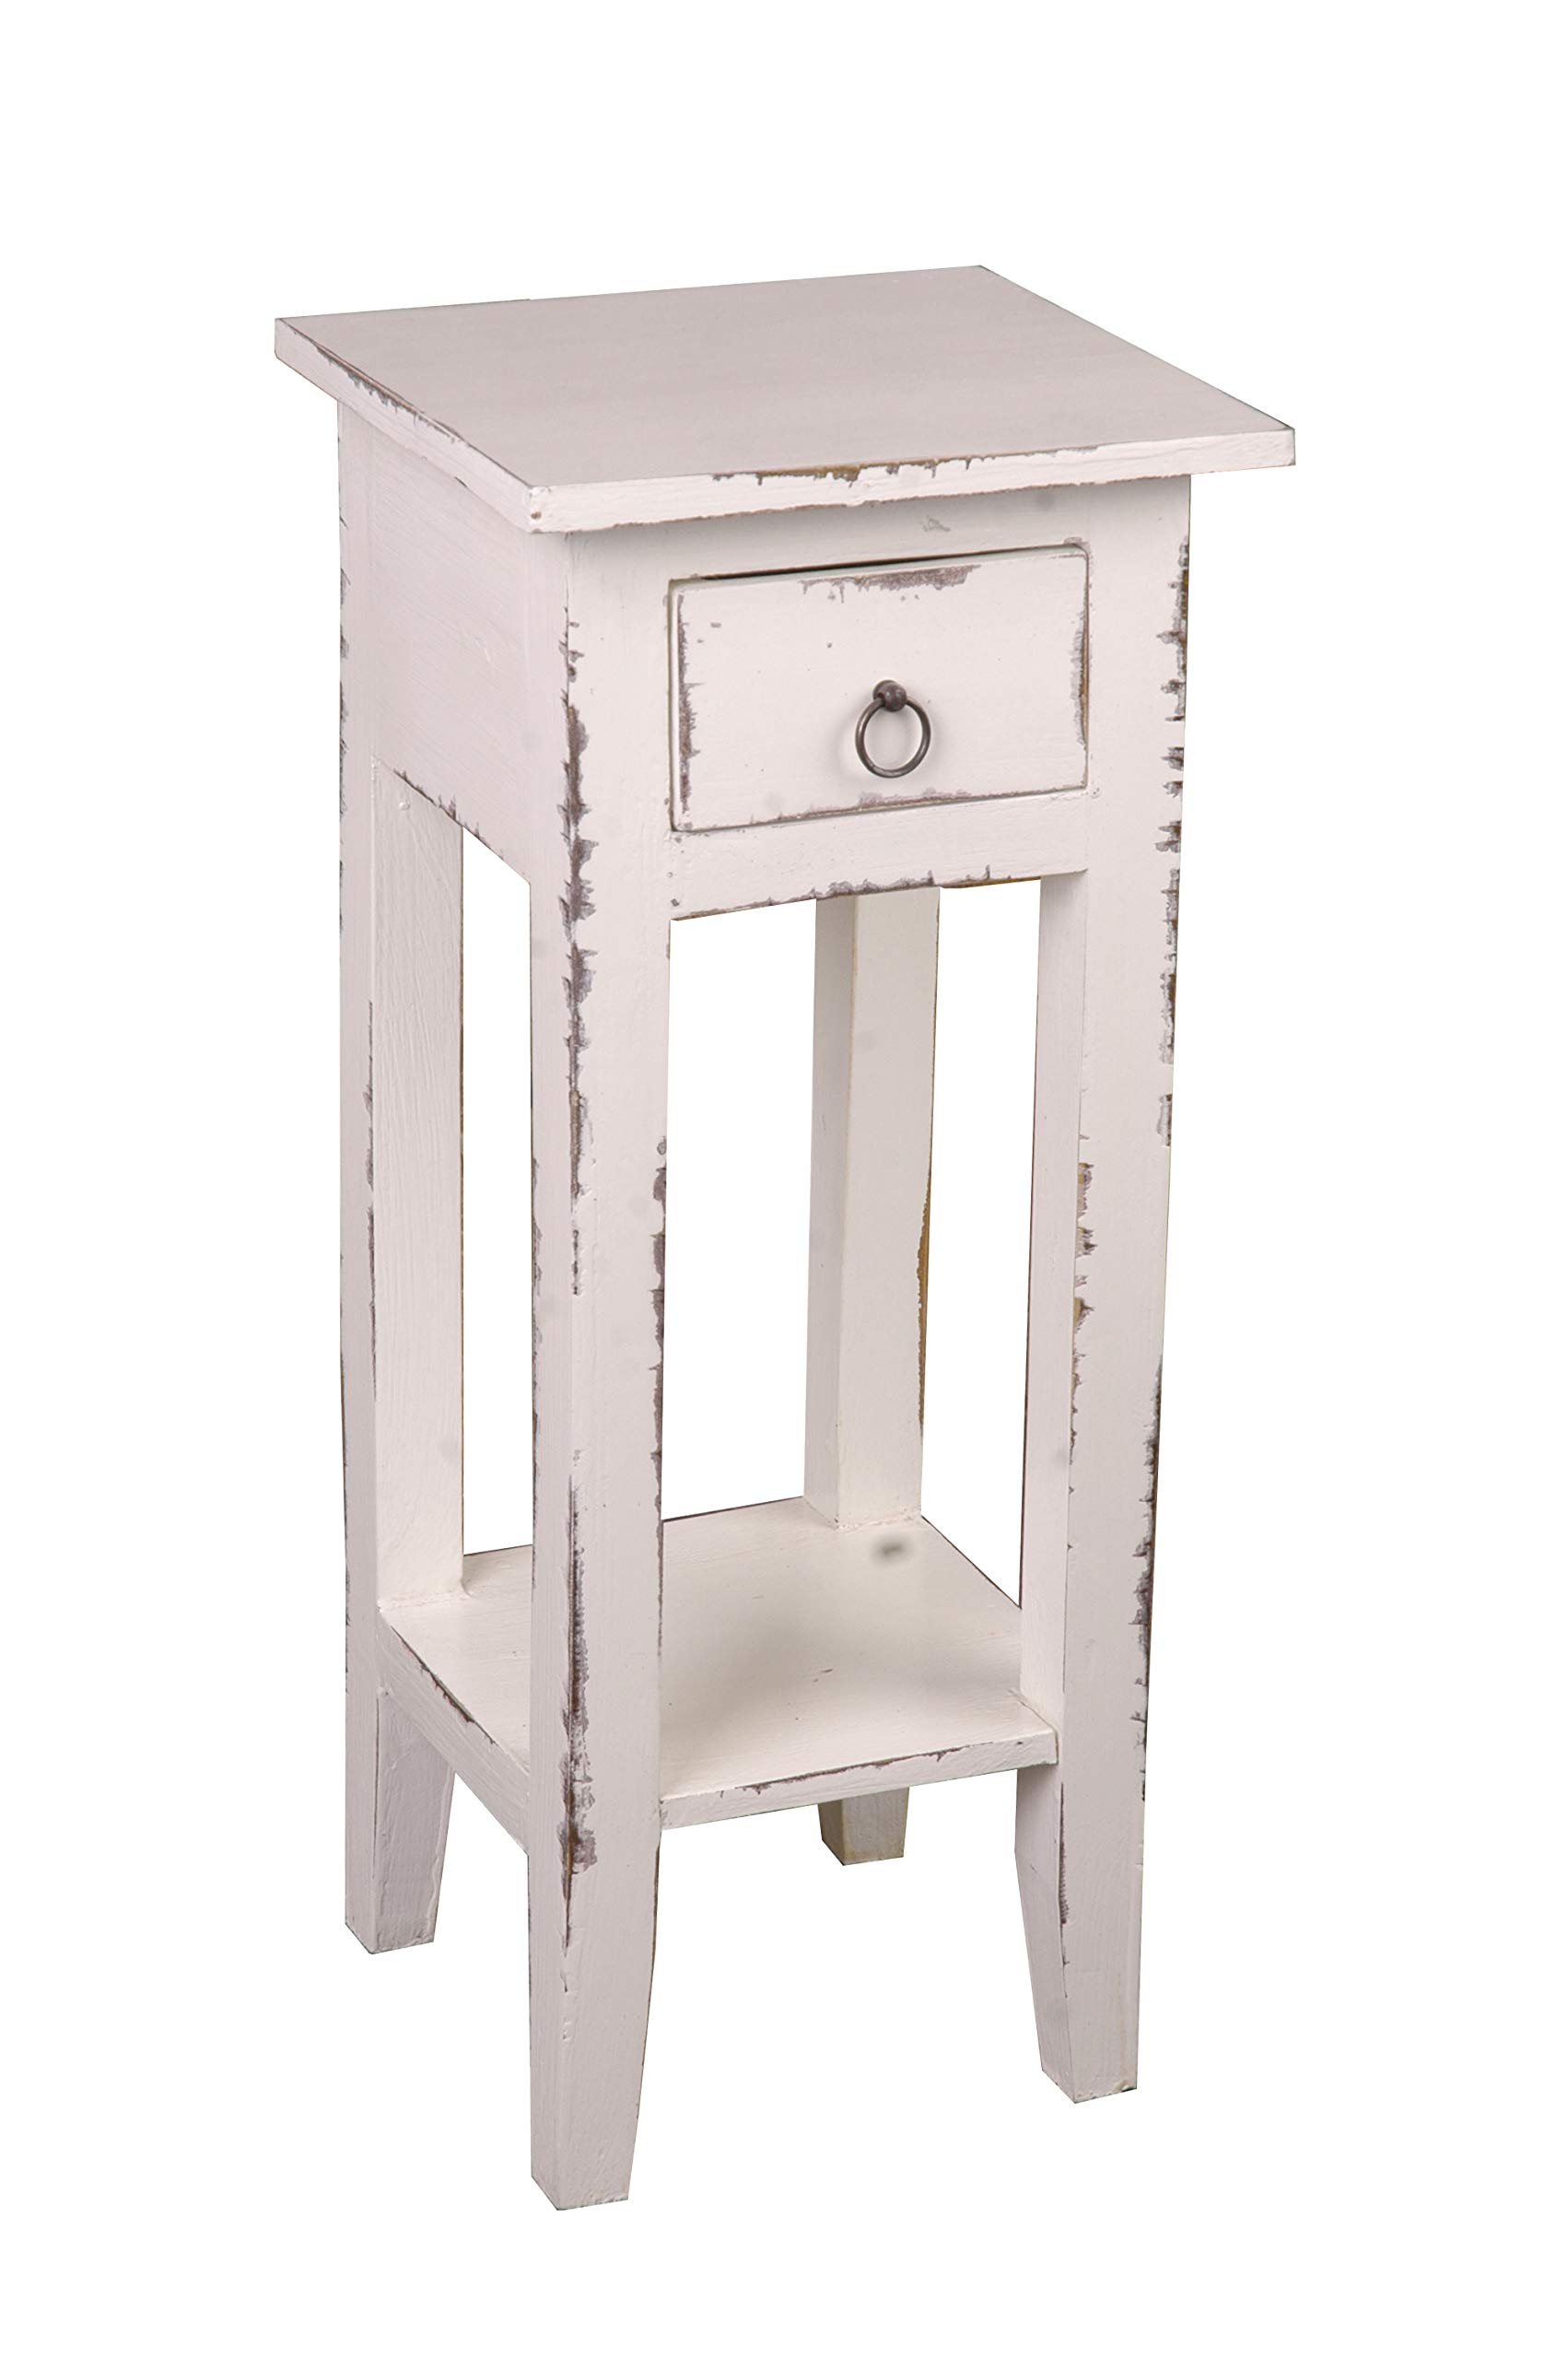 Sunset Trading Shabby Chic Cottage Table, Small One Drawer, Light Distressed whitewash by Sunset Trading